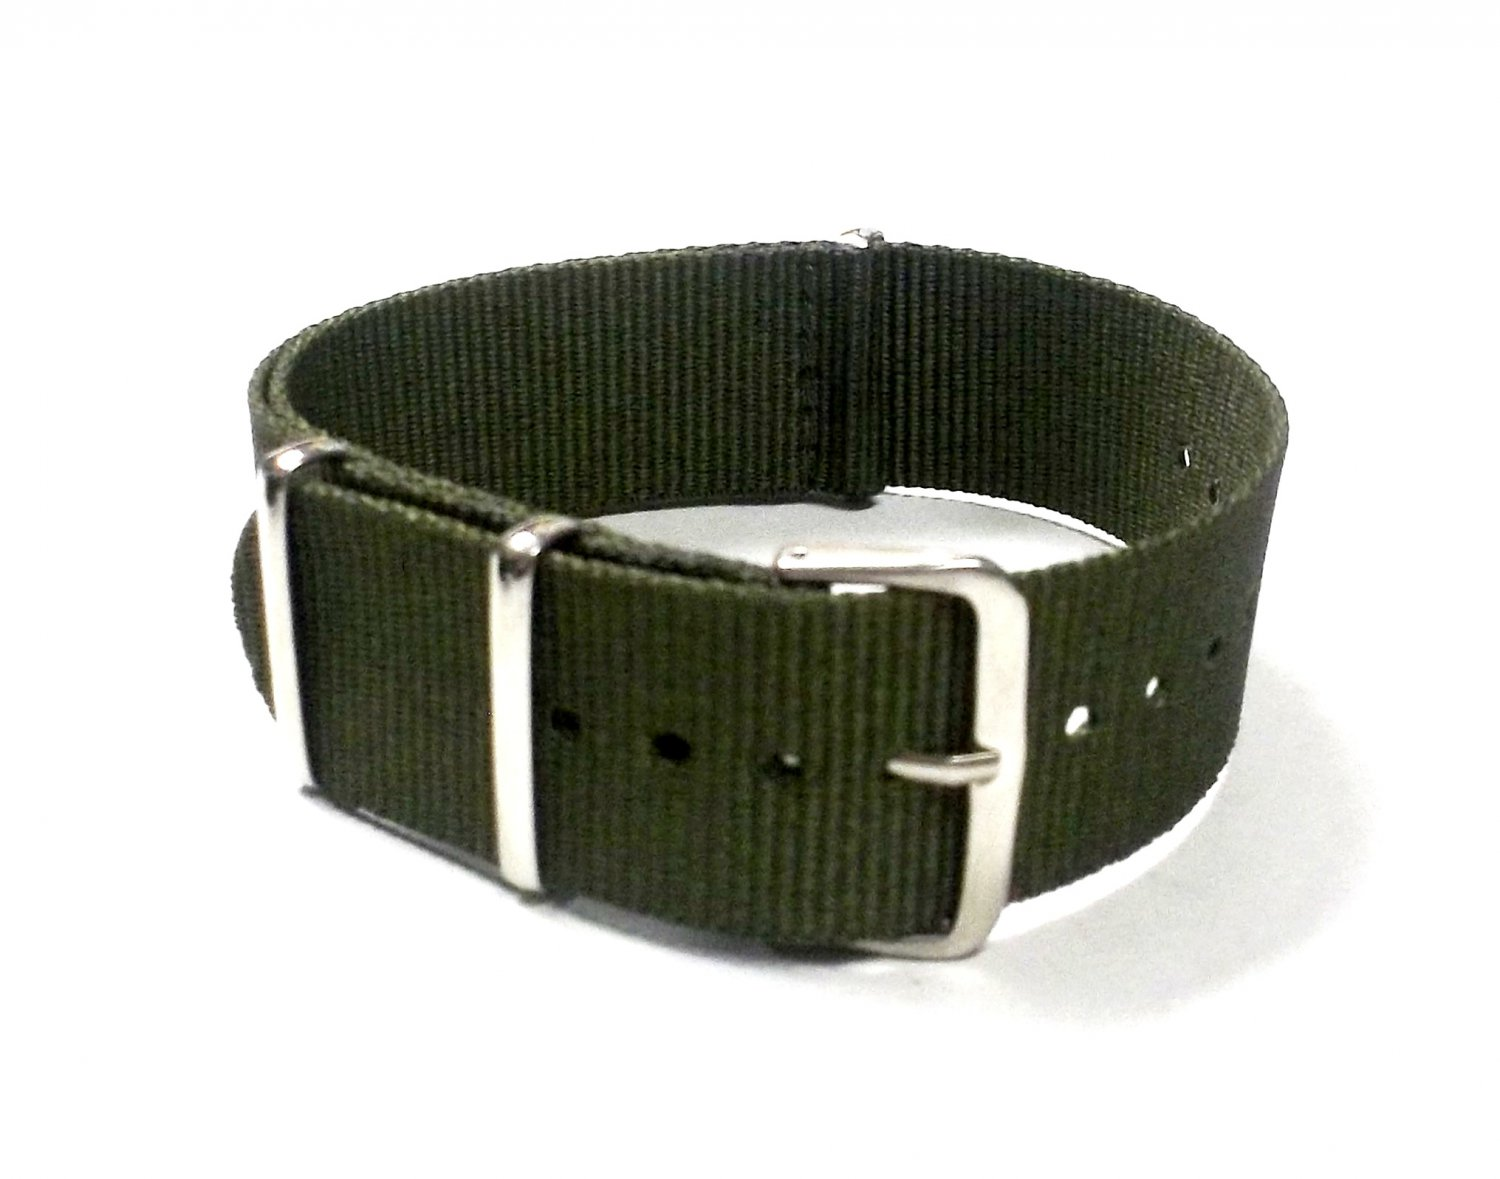 Military G10 Nylon Olive Green Watchstraps Watch Straps Band 20mm FREE SHIPPING